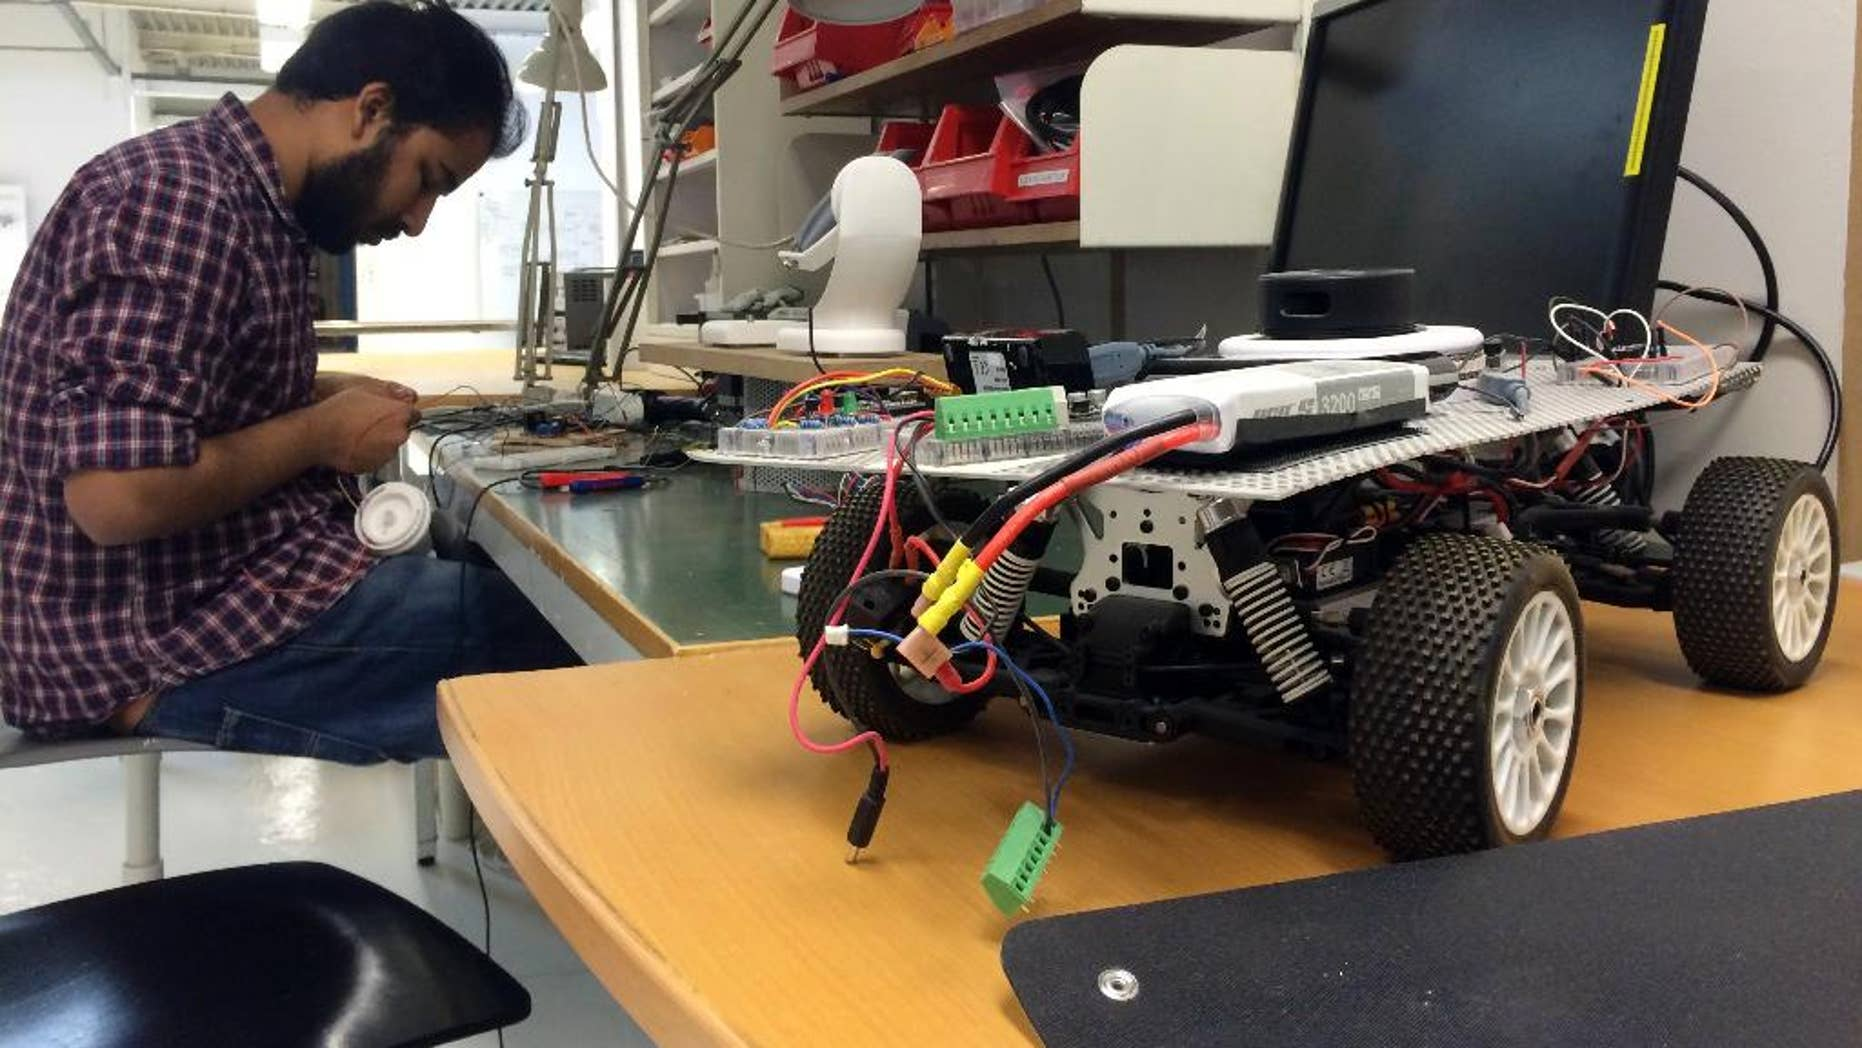 In this Monday, March 13, 2017 photo, a Uniti employee works on prototype steering controls, at the startup's temporary production facility in Lund, Sweden. A group of Swedish students that raised 1.2 million euros in crowdfunding for their startup to build electric cars has caught the attention of German industrial heavyweight Siemens. The two sides said Wednesday that they were starting a partnership that will see them create 50,000 lightweight city cars a year starting next year. (AP Photo/James Brooks)